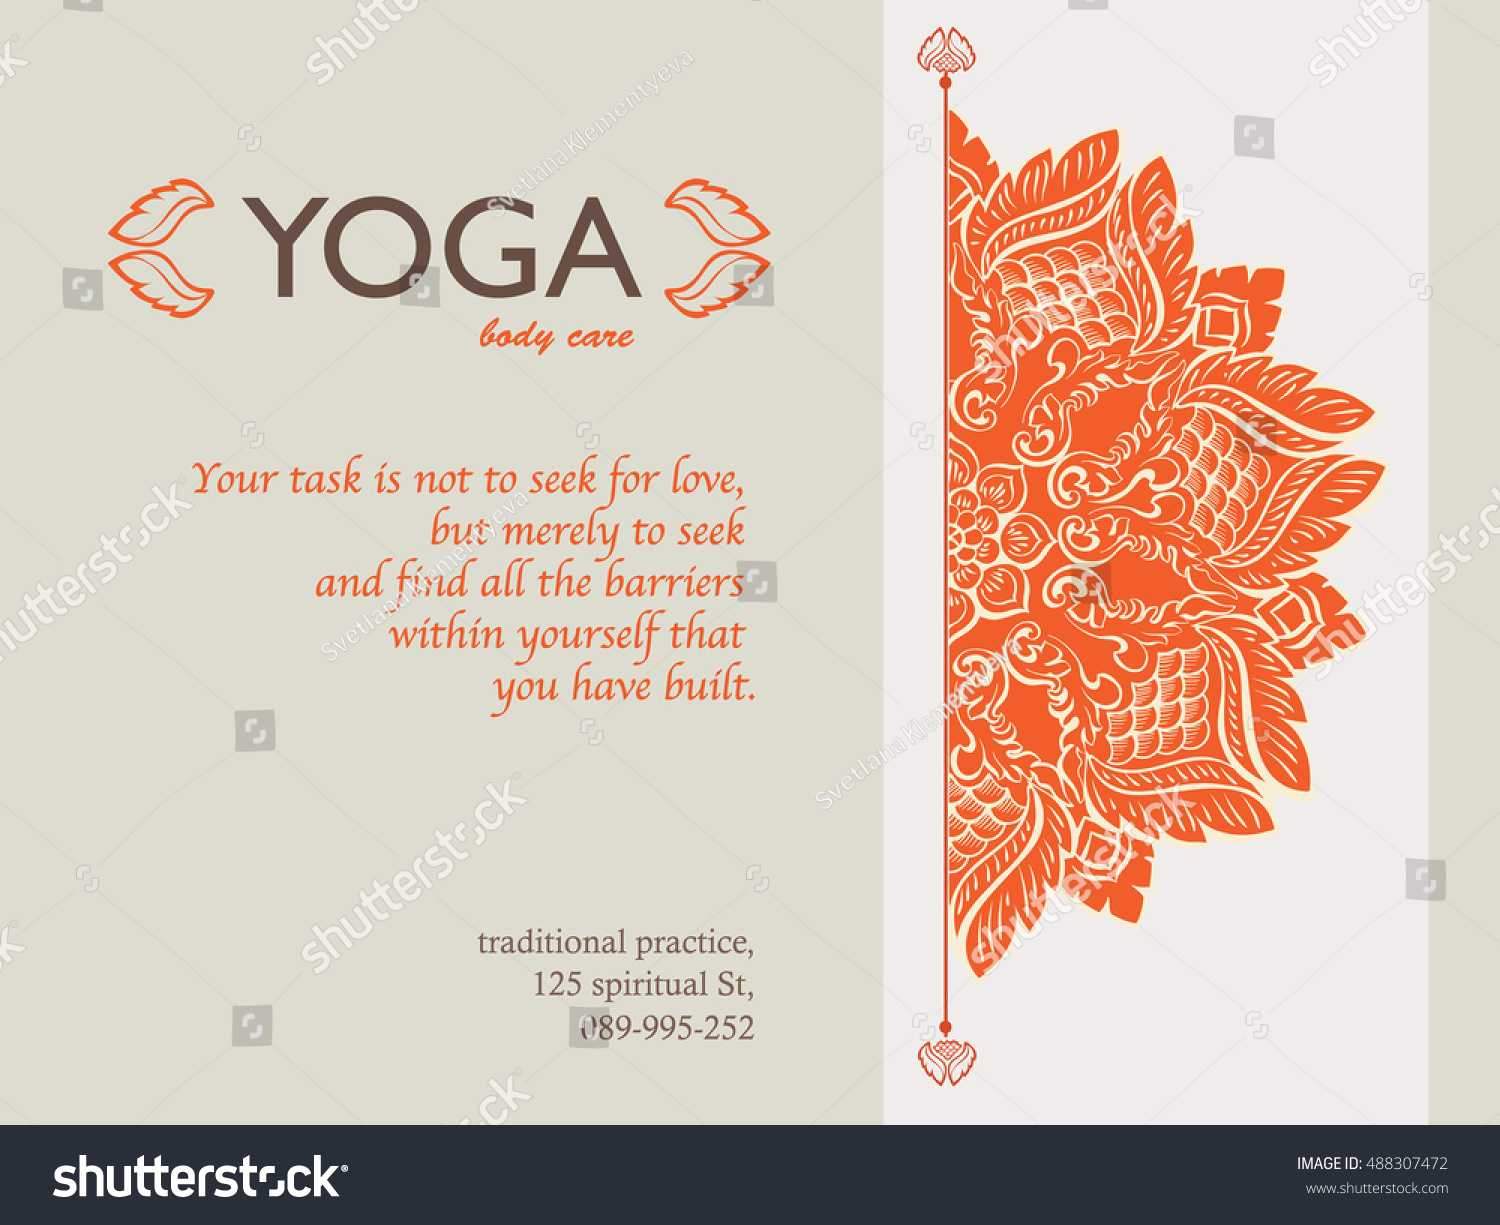 Yoga Gift Certificate Templates | Gift Certificate Templates In Yoga Gift Certificate Template Free